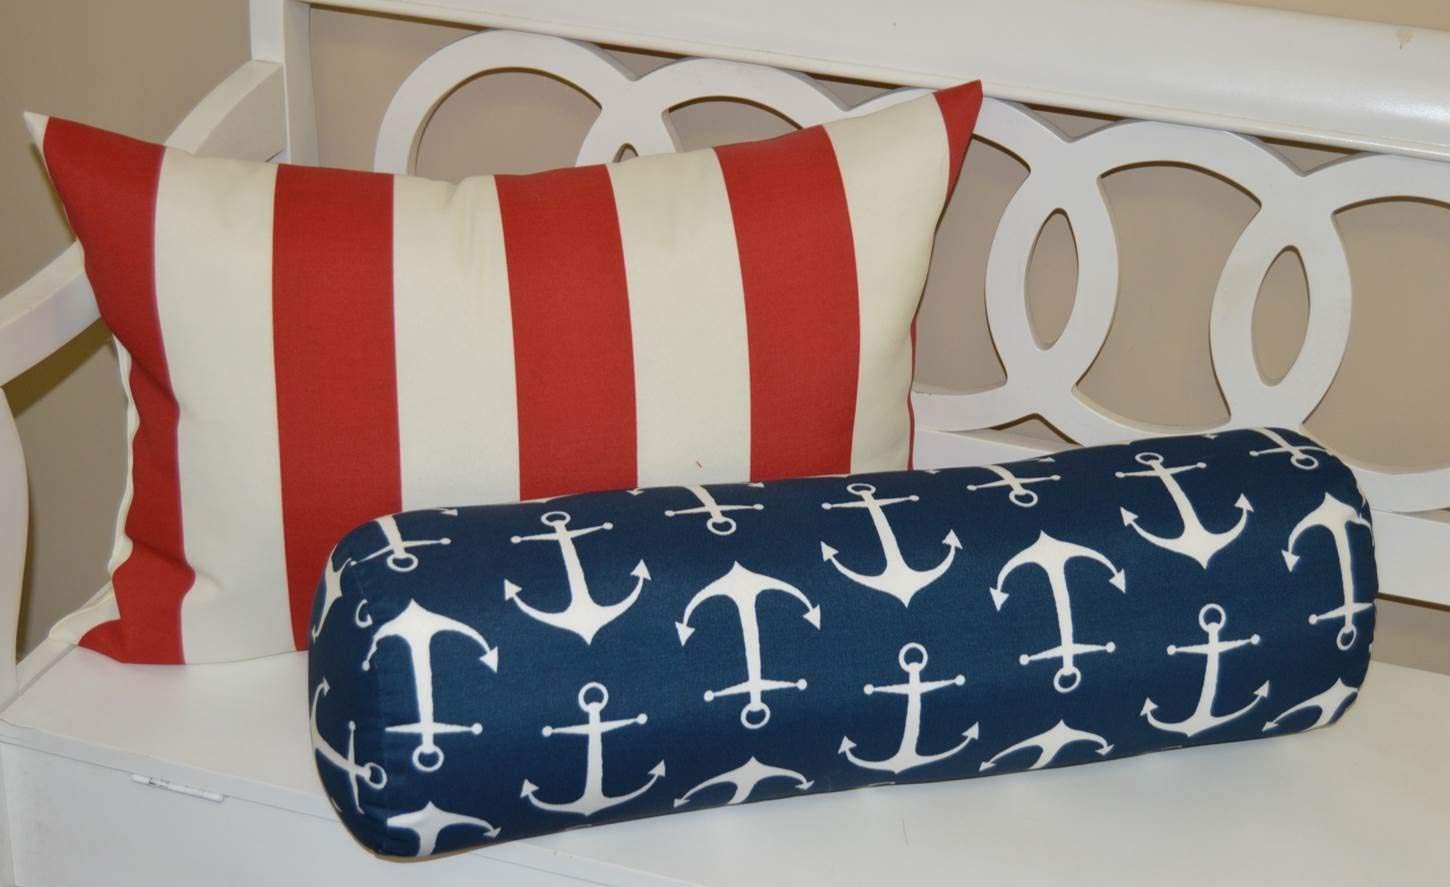 Set of 2 - Indoor / Outdoor Jumbo, Large, Over–sized, Rectangle / Lumbar & Neckroll / Bolster Chaise Lounge Decorative Throw / Toss Pillow - Red and White Stripe & Navy Blue with White Nautical Anchors